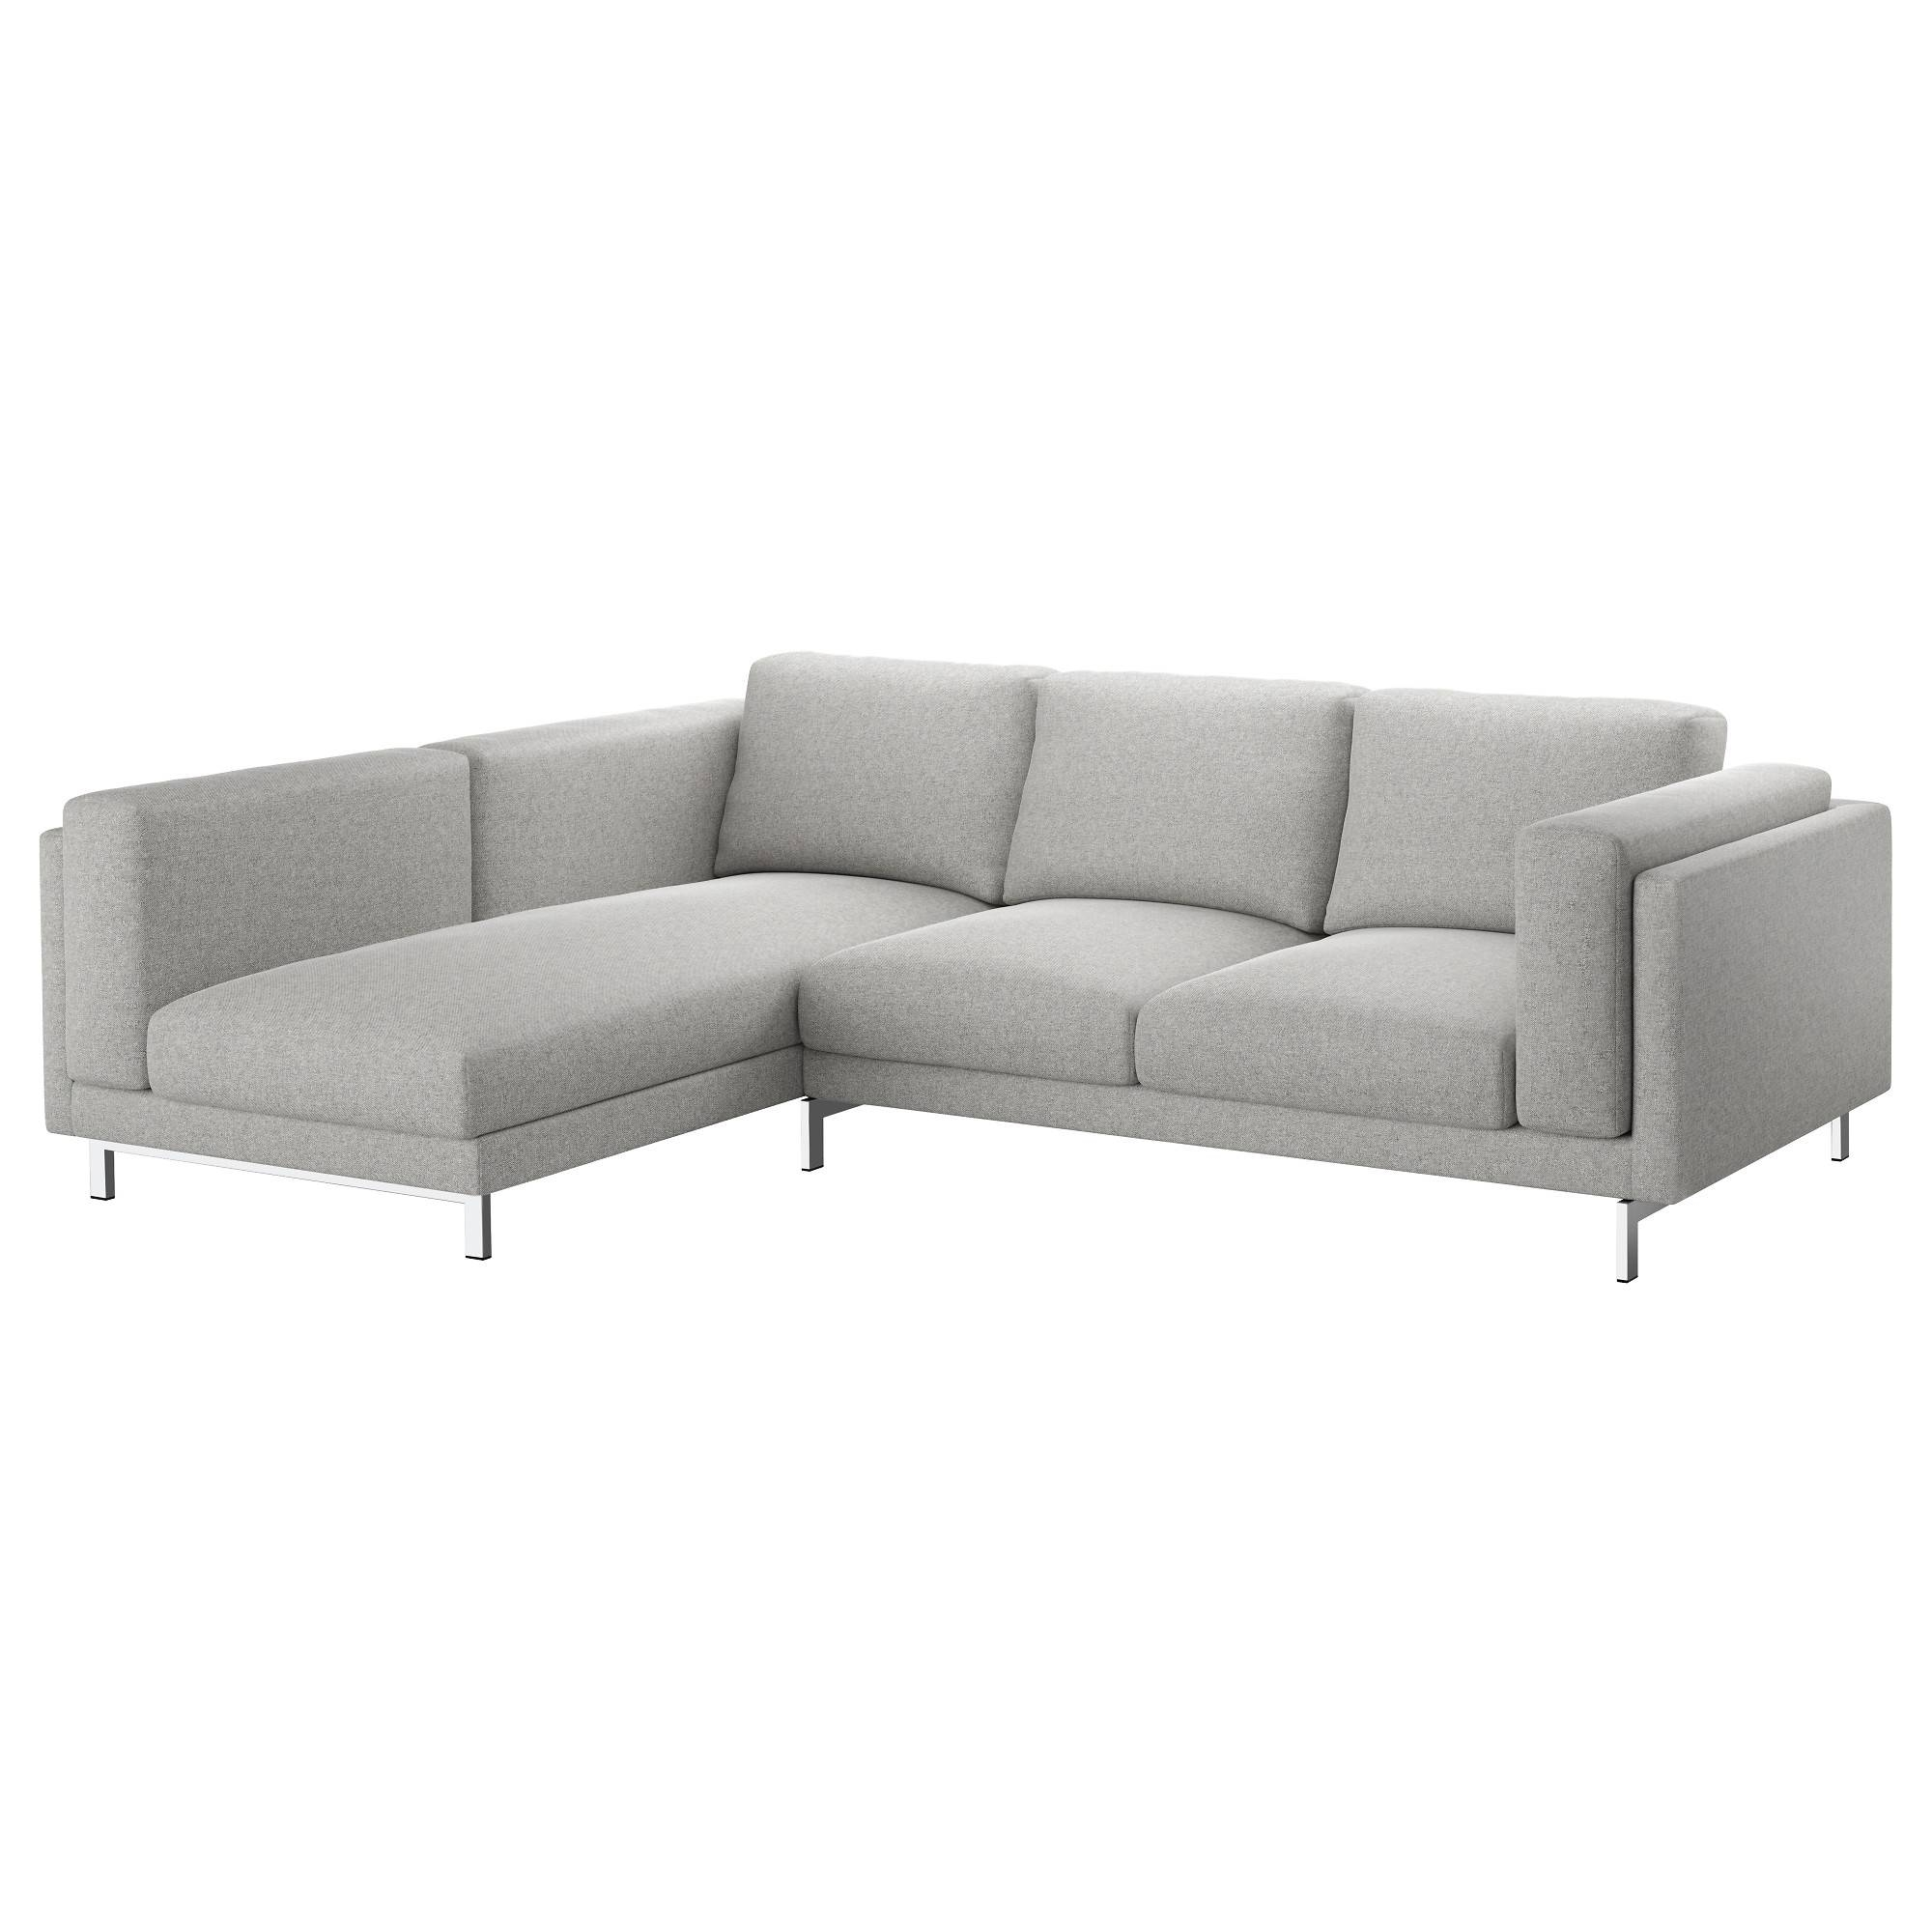 Nockeby Two-Seat Sofa W Chaise Longue Left Tallmyra White/black throughout Sofas With Chaise Longue (Image 20 of 30)